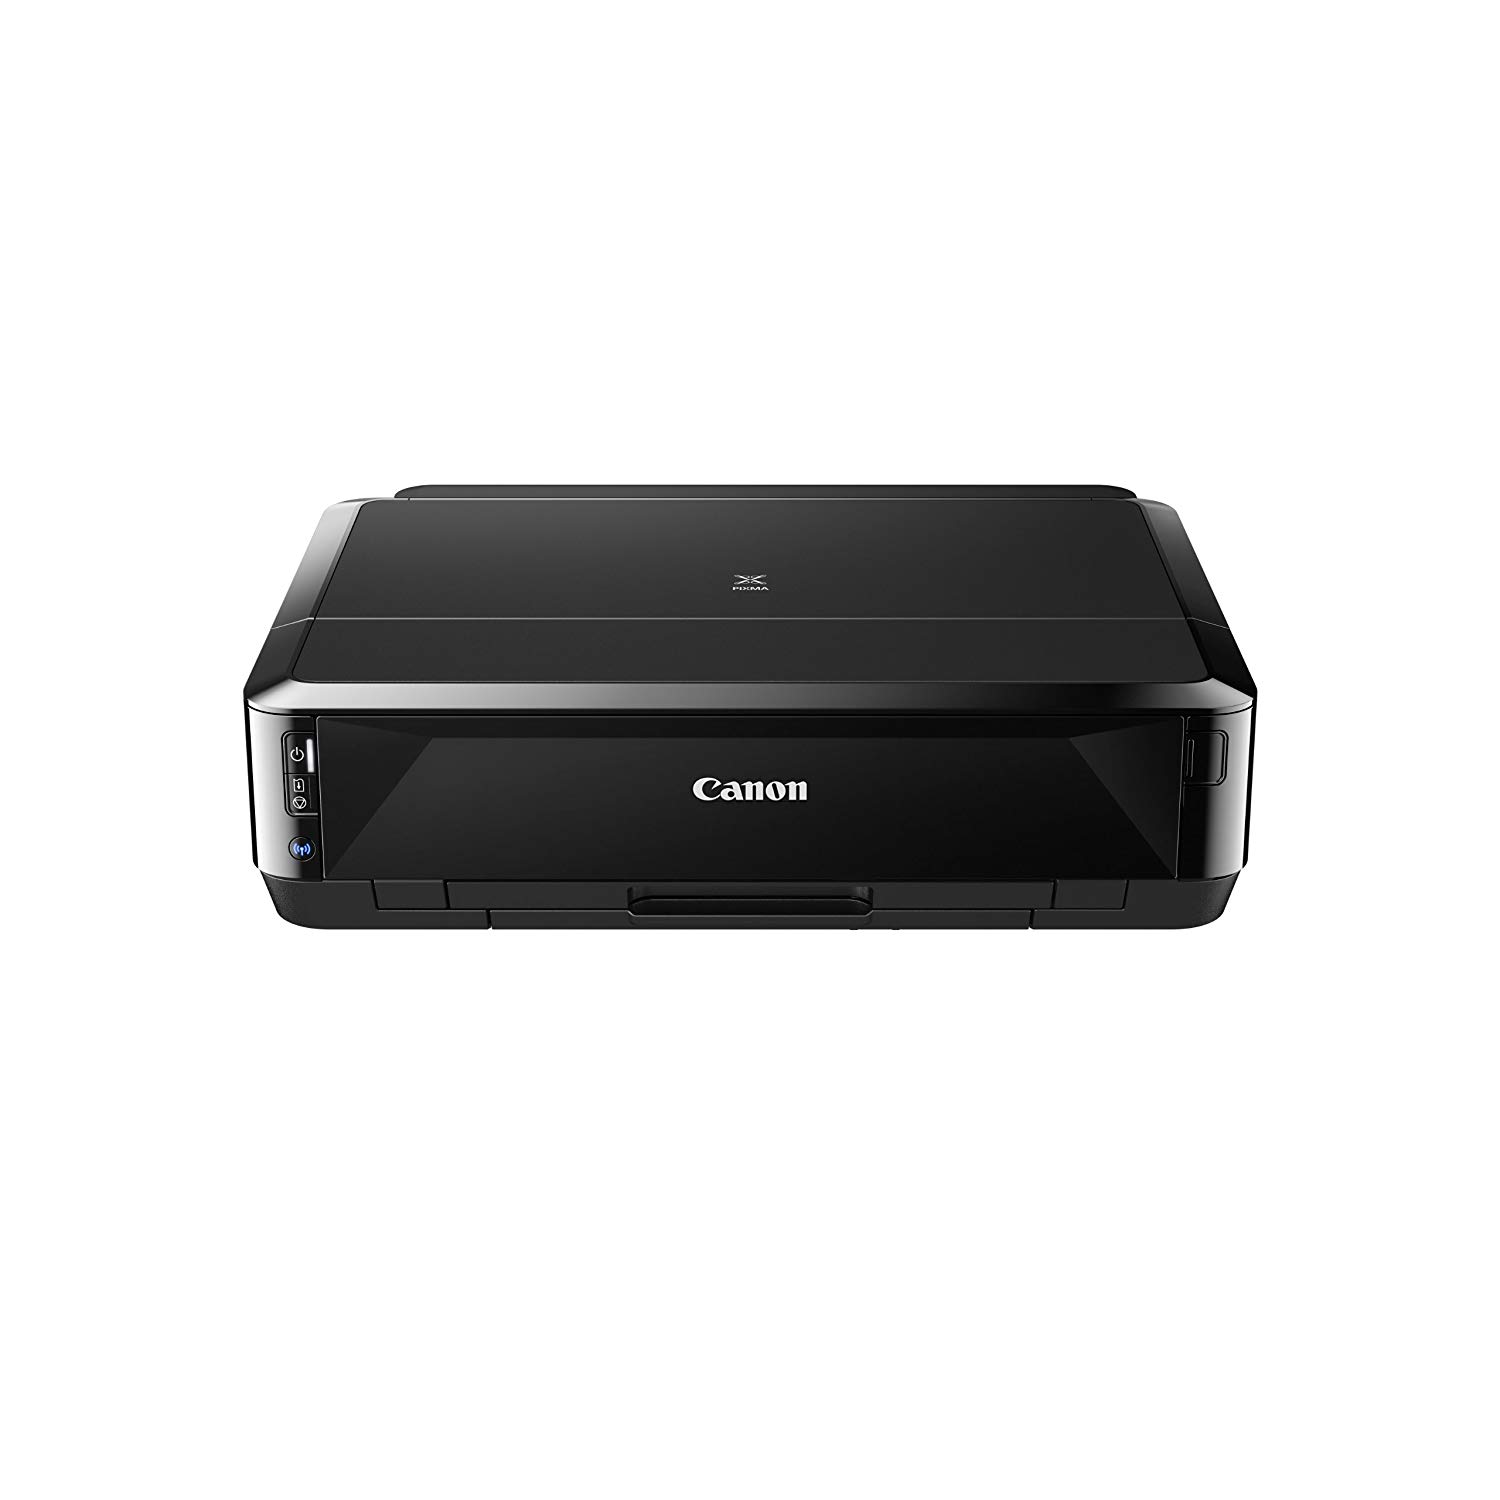 Canon Pixma IP7250 Single Function